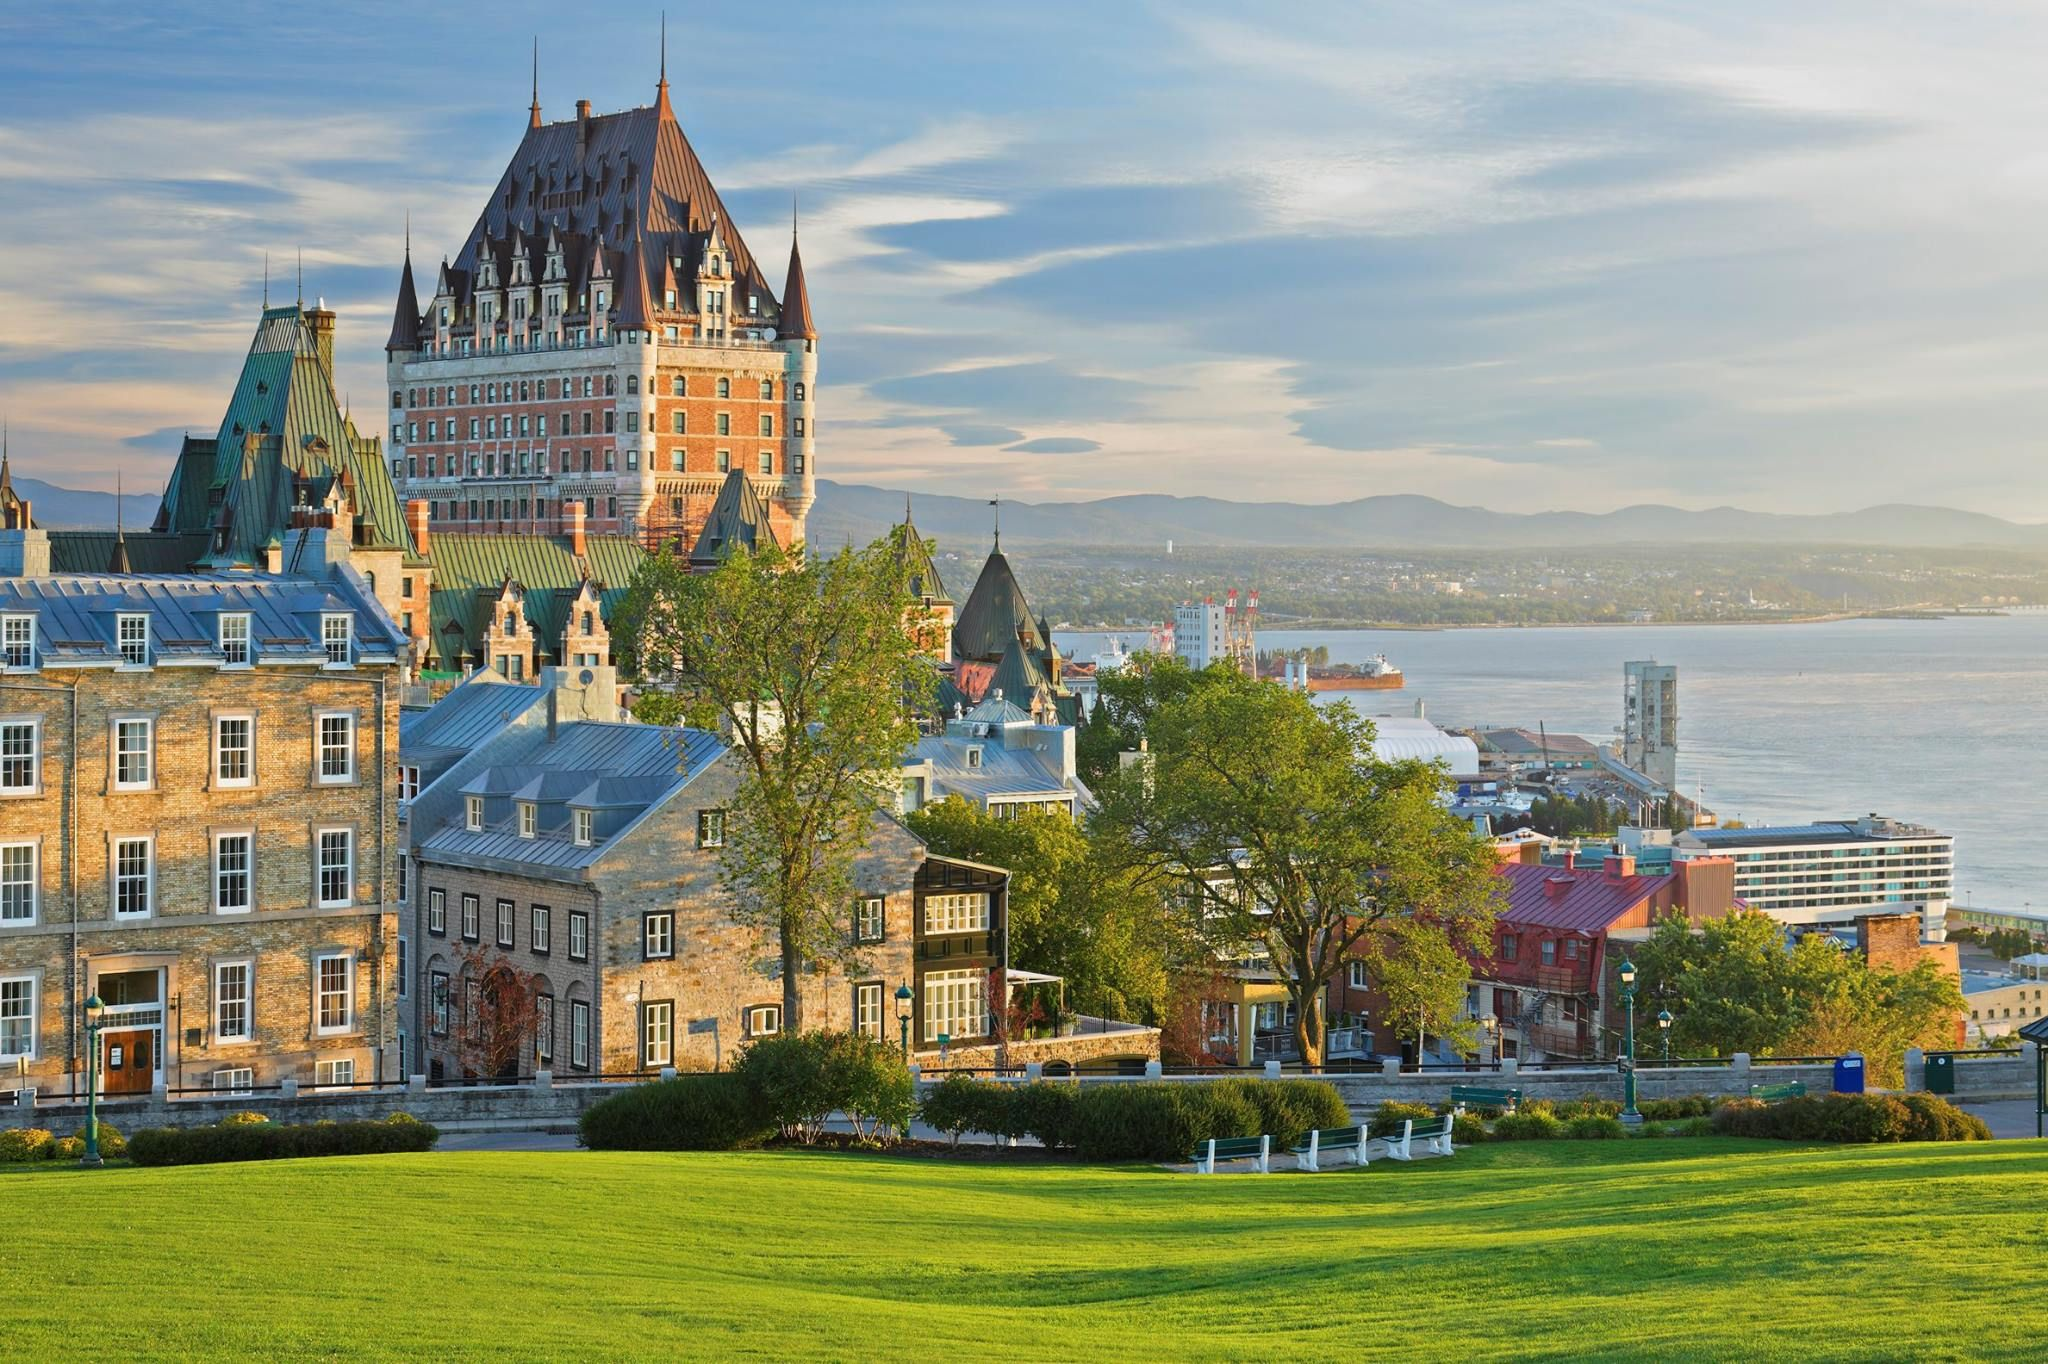 The Château Frontenac in Quebec City built in the late